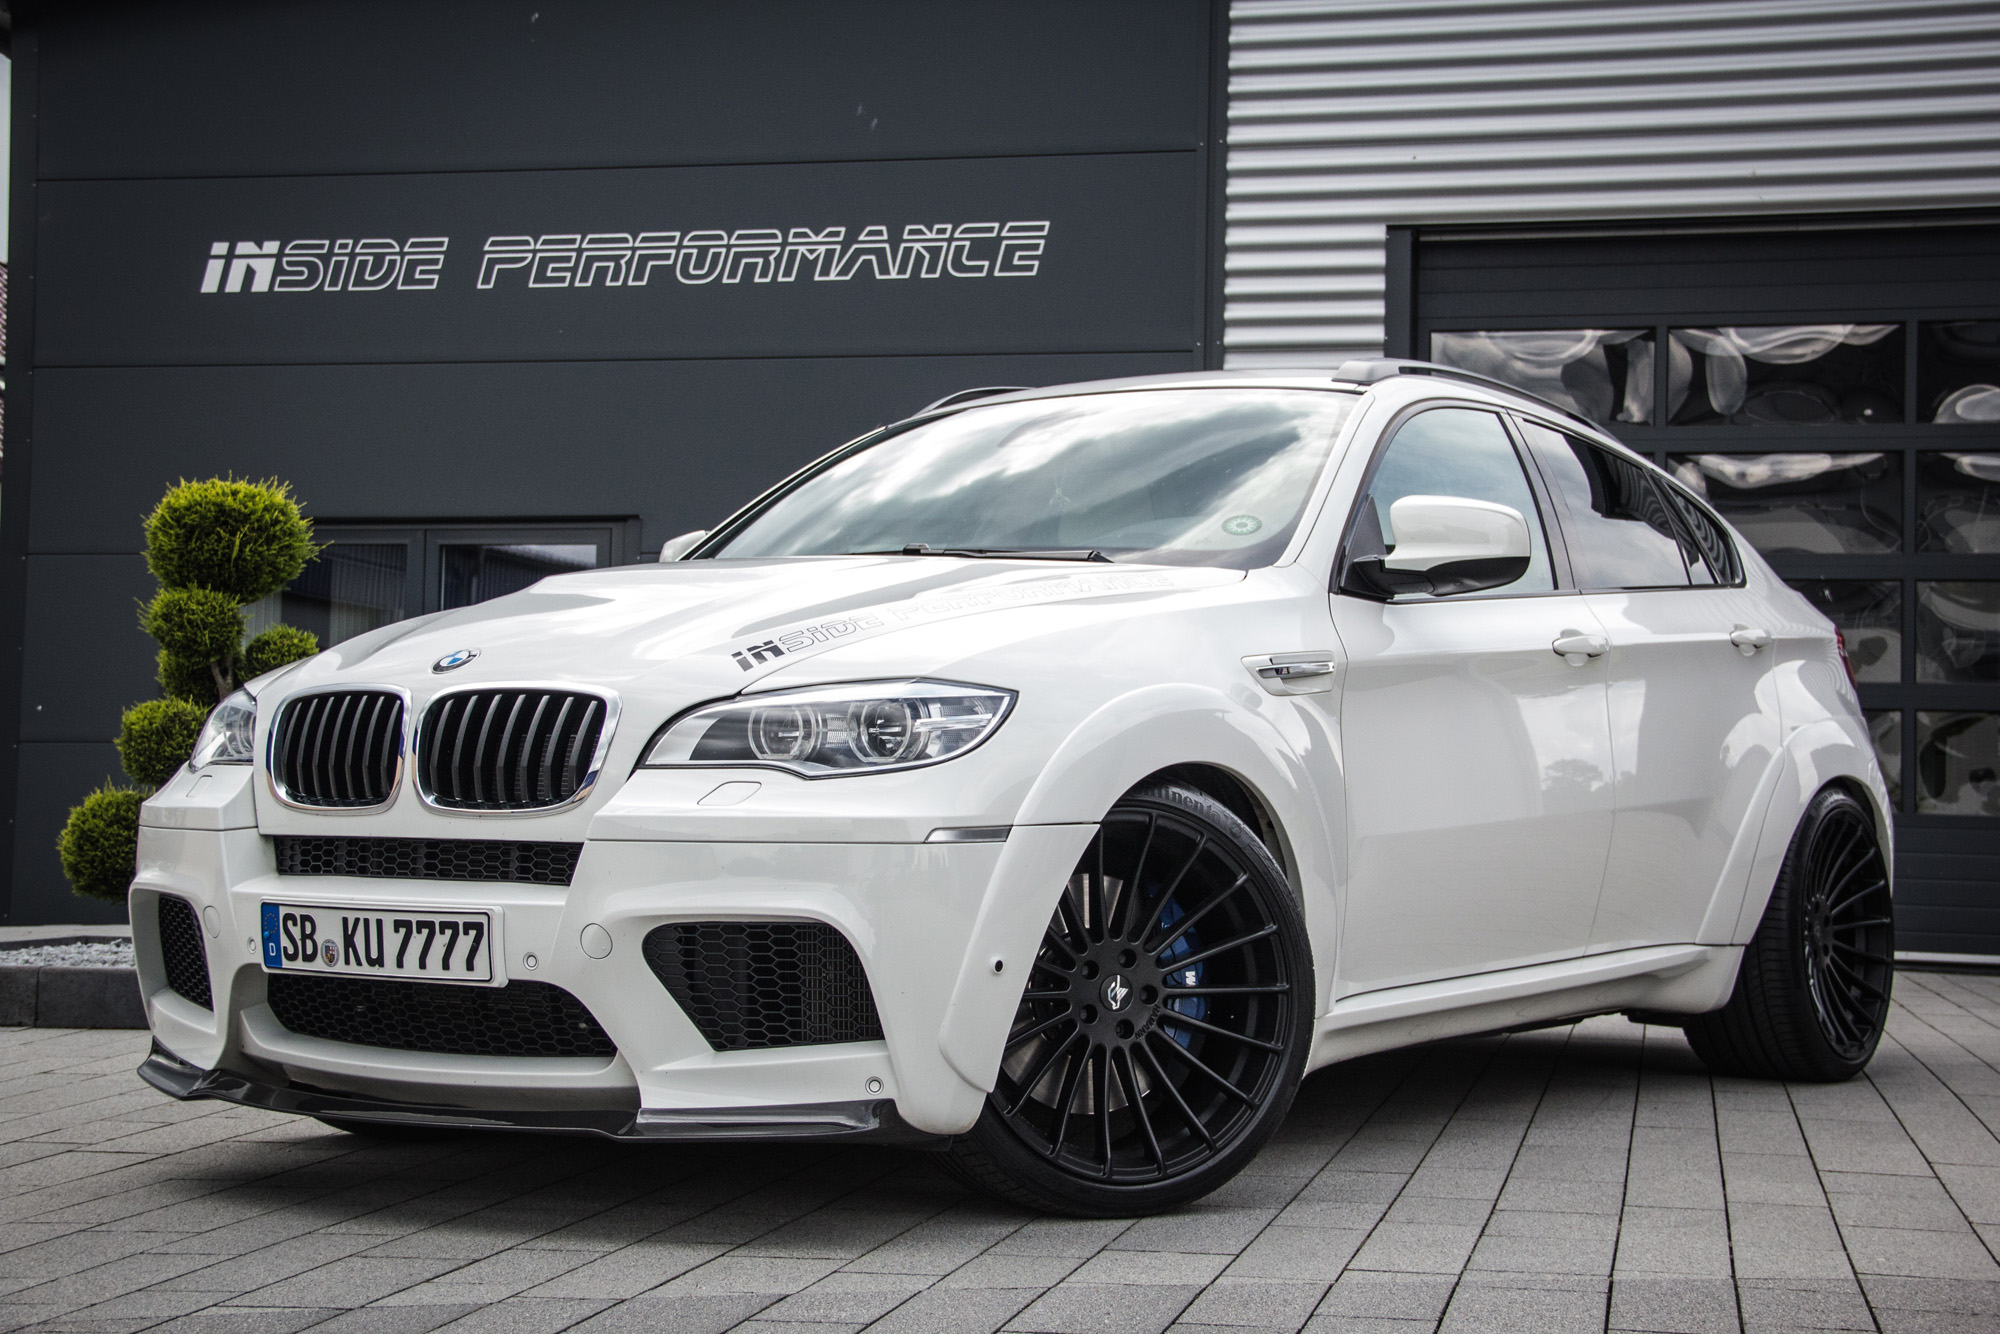 Bmw X6 M White Shark E71 Insideperformance Sorgt F 252 R